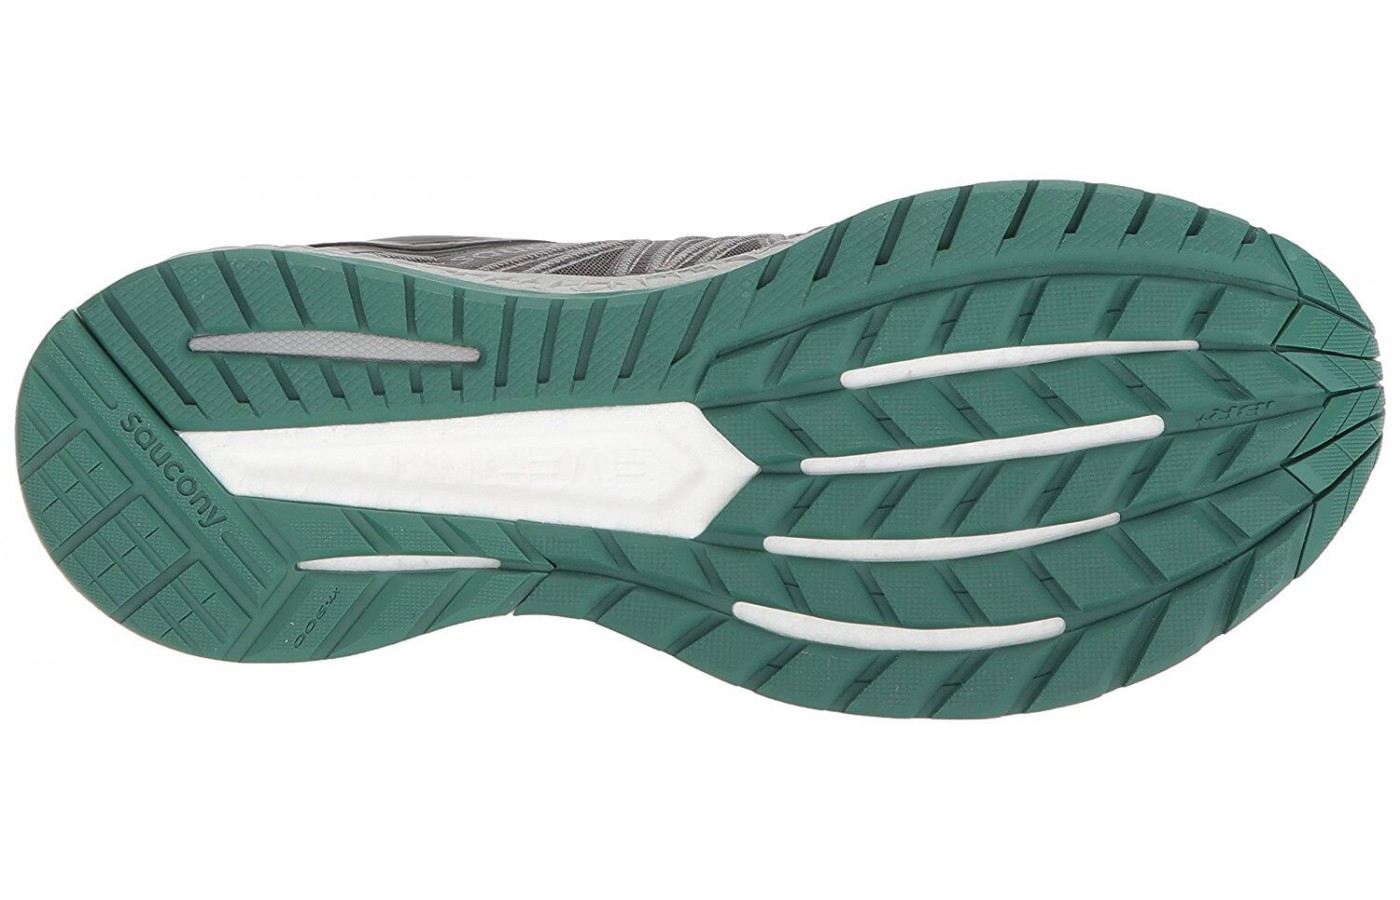 The Saucony Hurricane ISO 4's outsole features TRI-FLEX technology